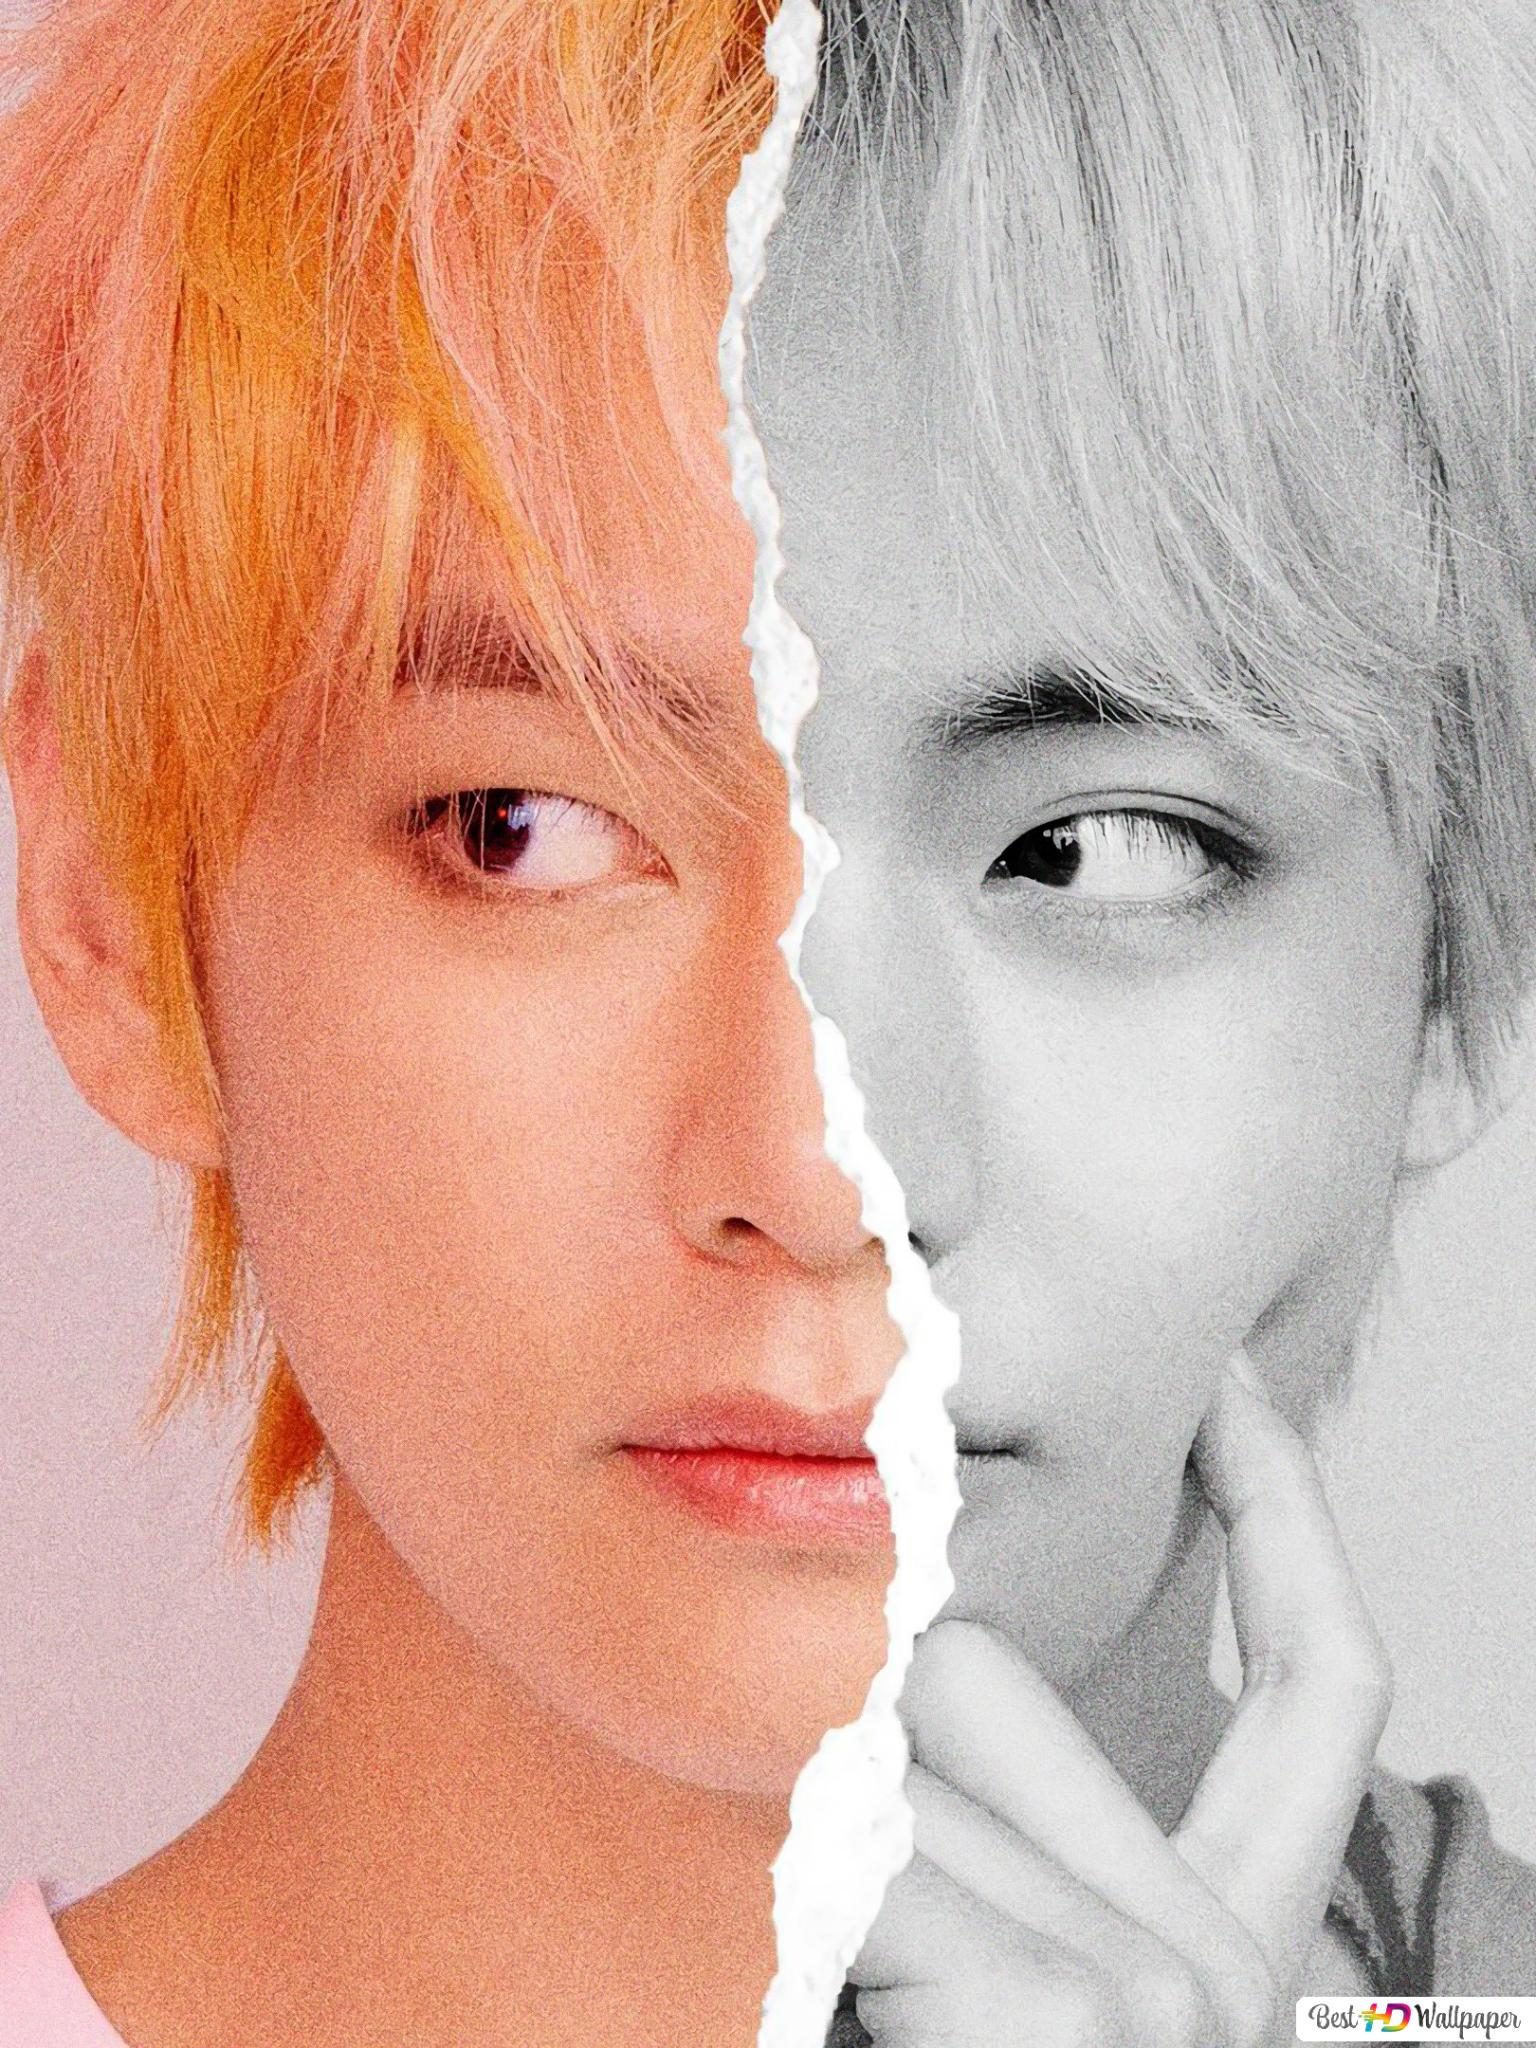 k pop band bts idol v kim tae hyung wallpaper 1536x2048 53628 203